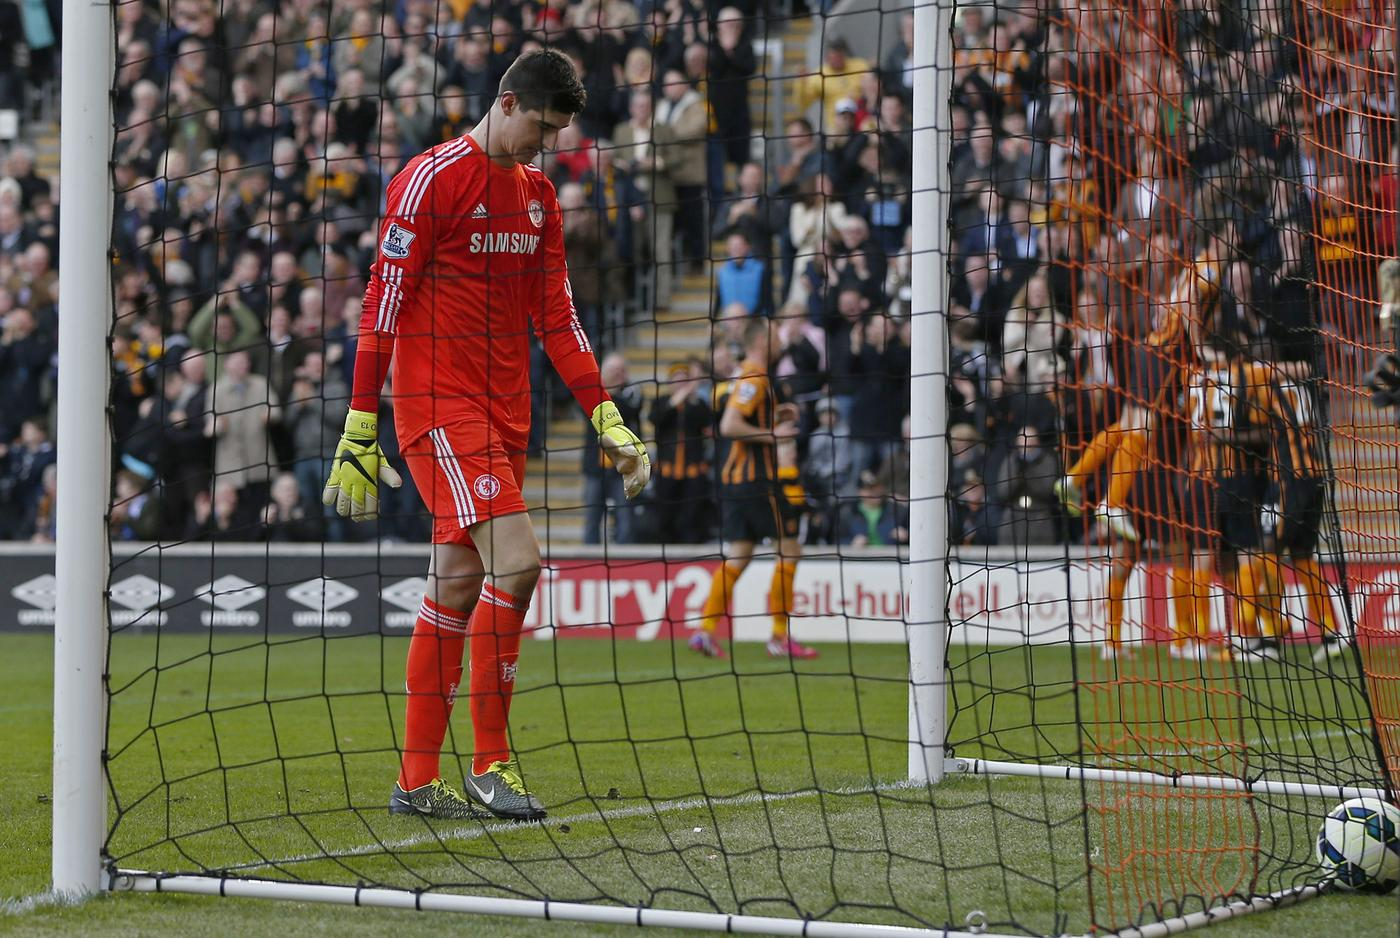 Chelsea demonstrated great character to recover from Hull slip-up